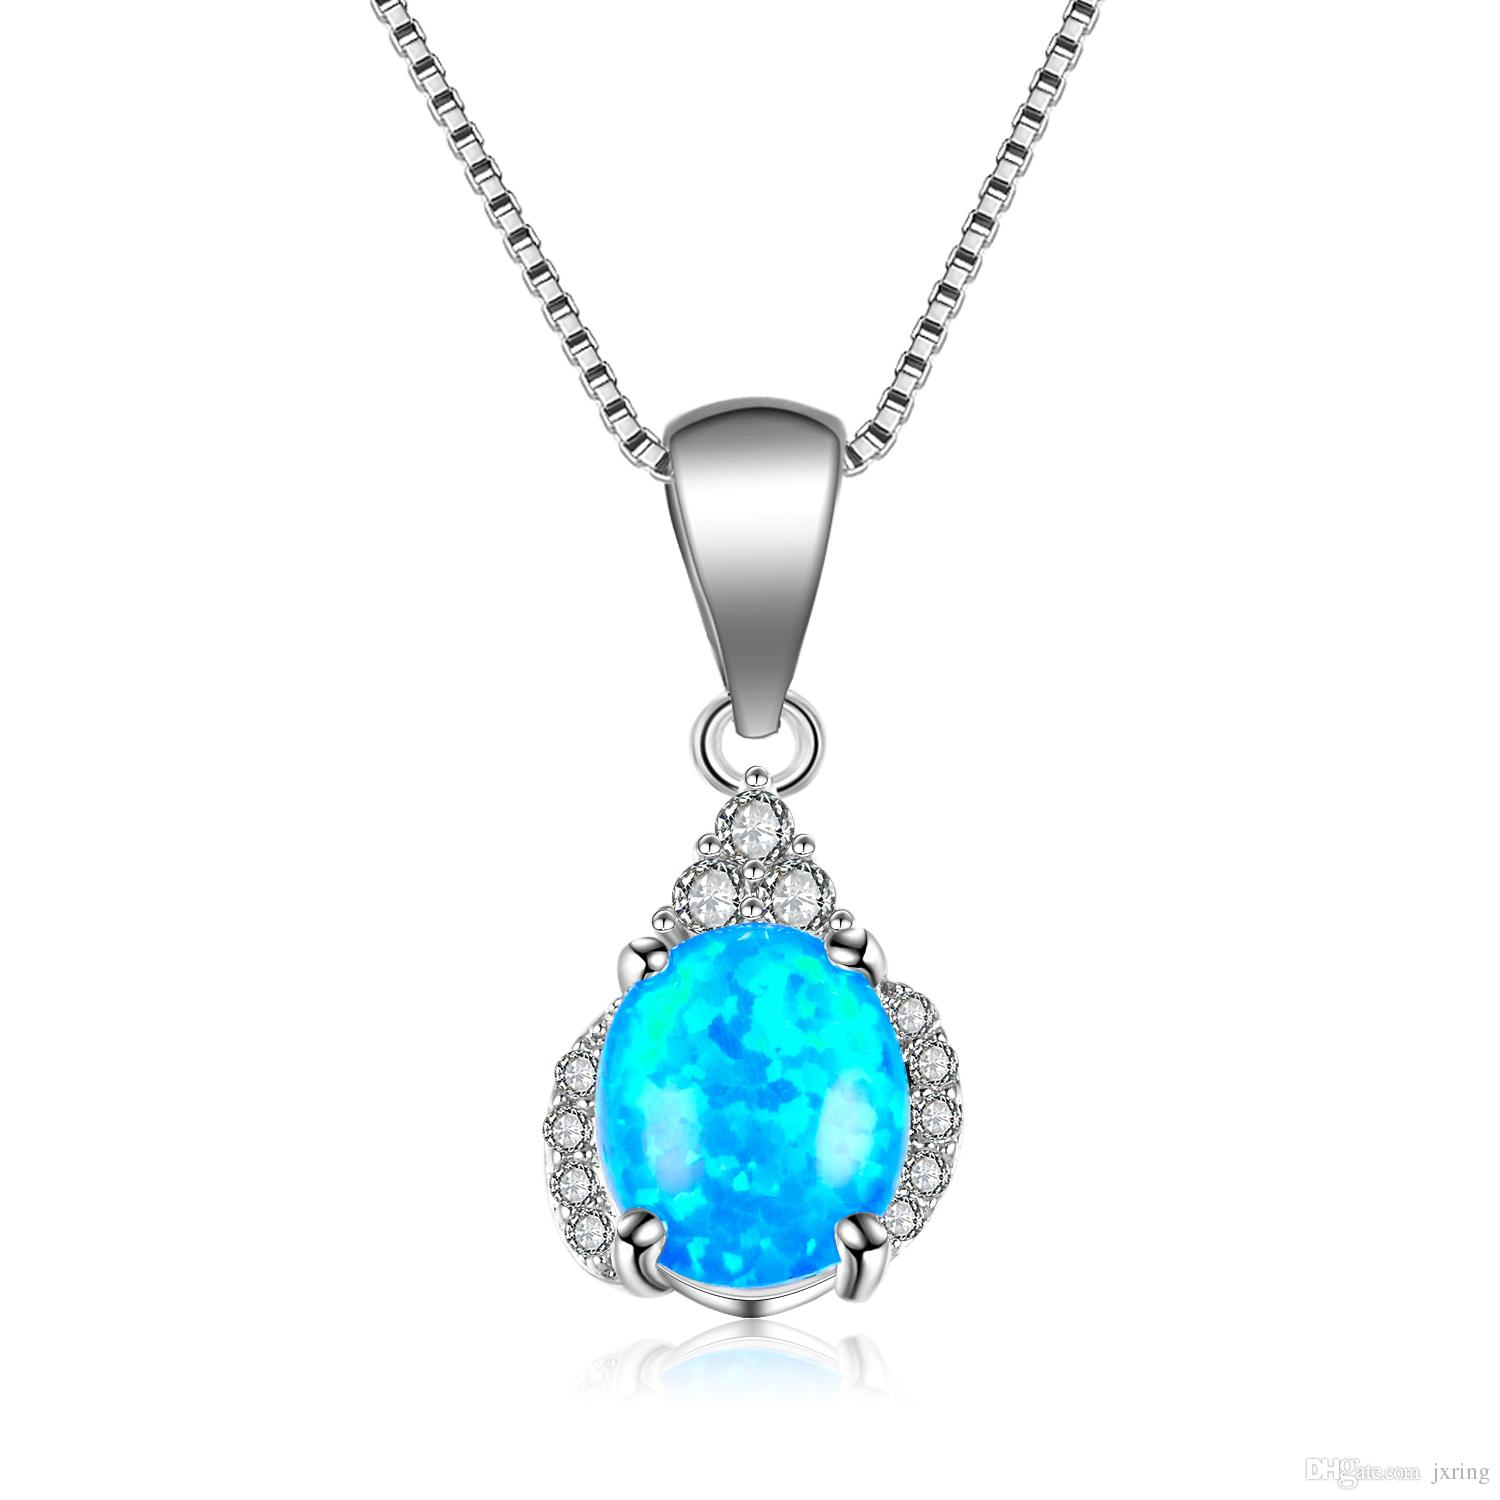 t alkemistry opal jewellery shop necklace blue pendant meira the